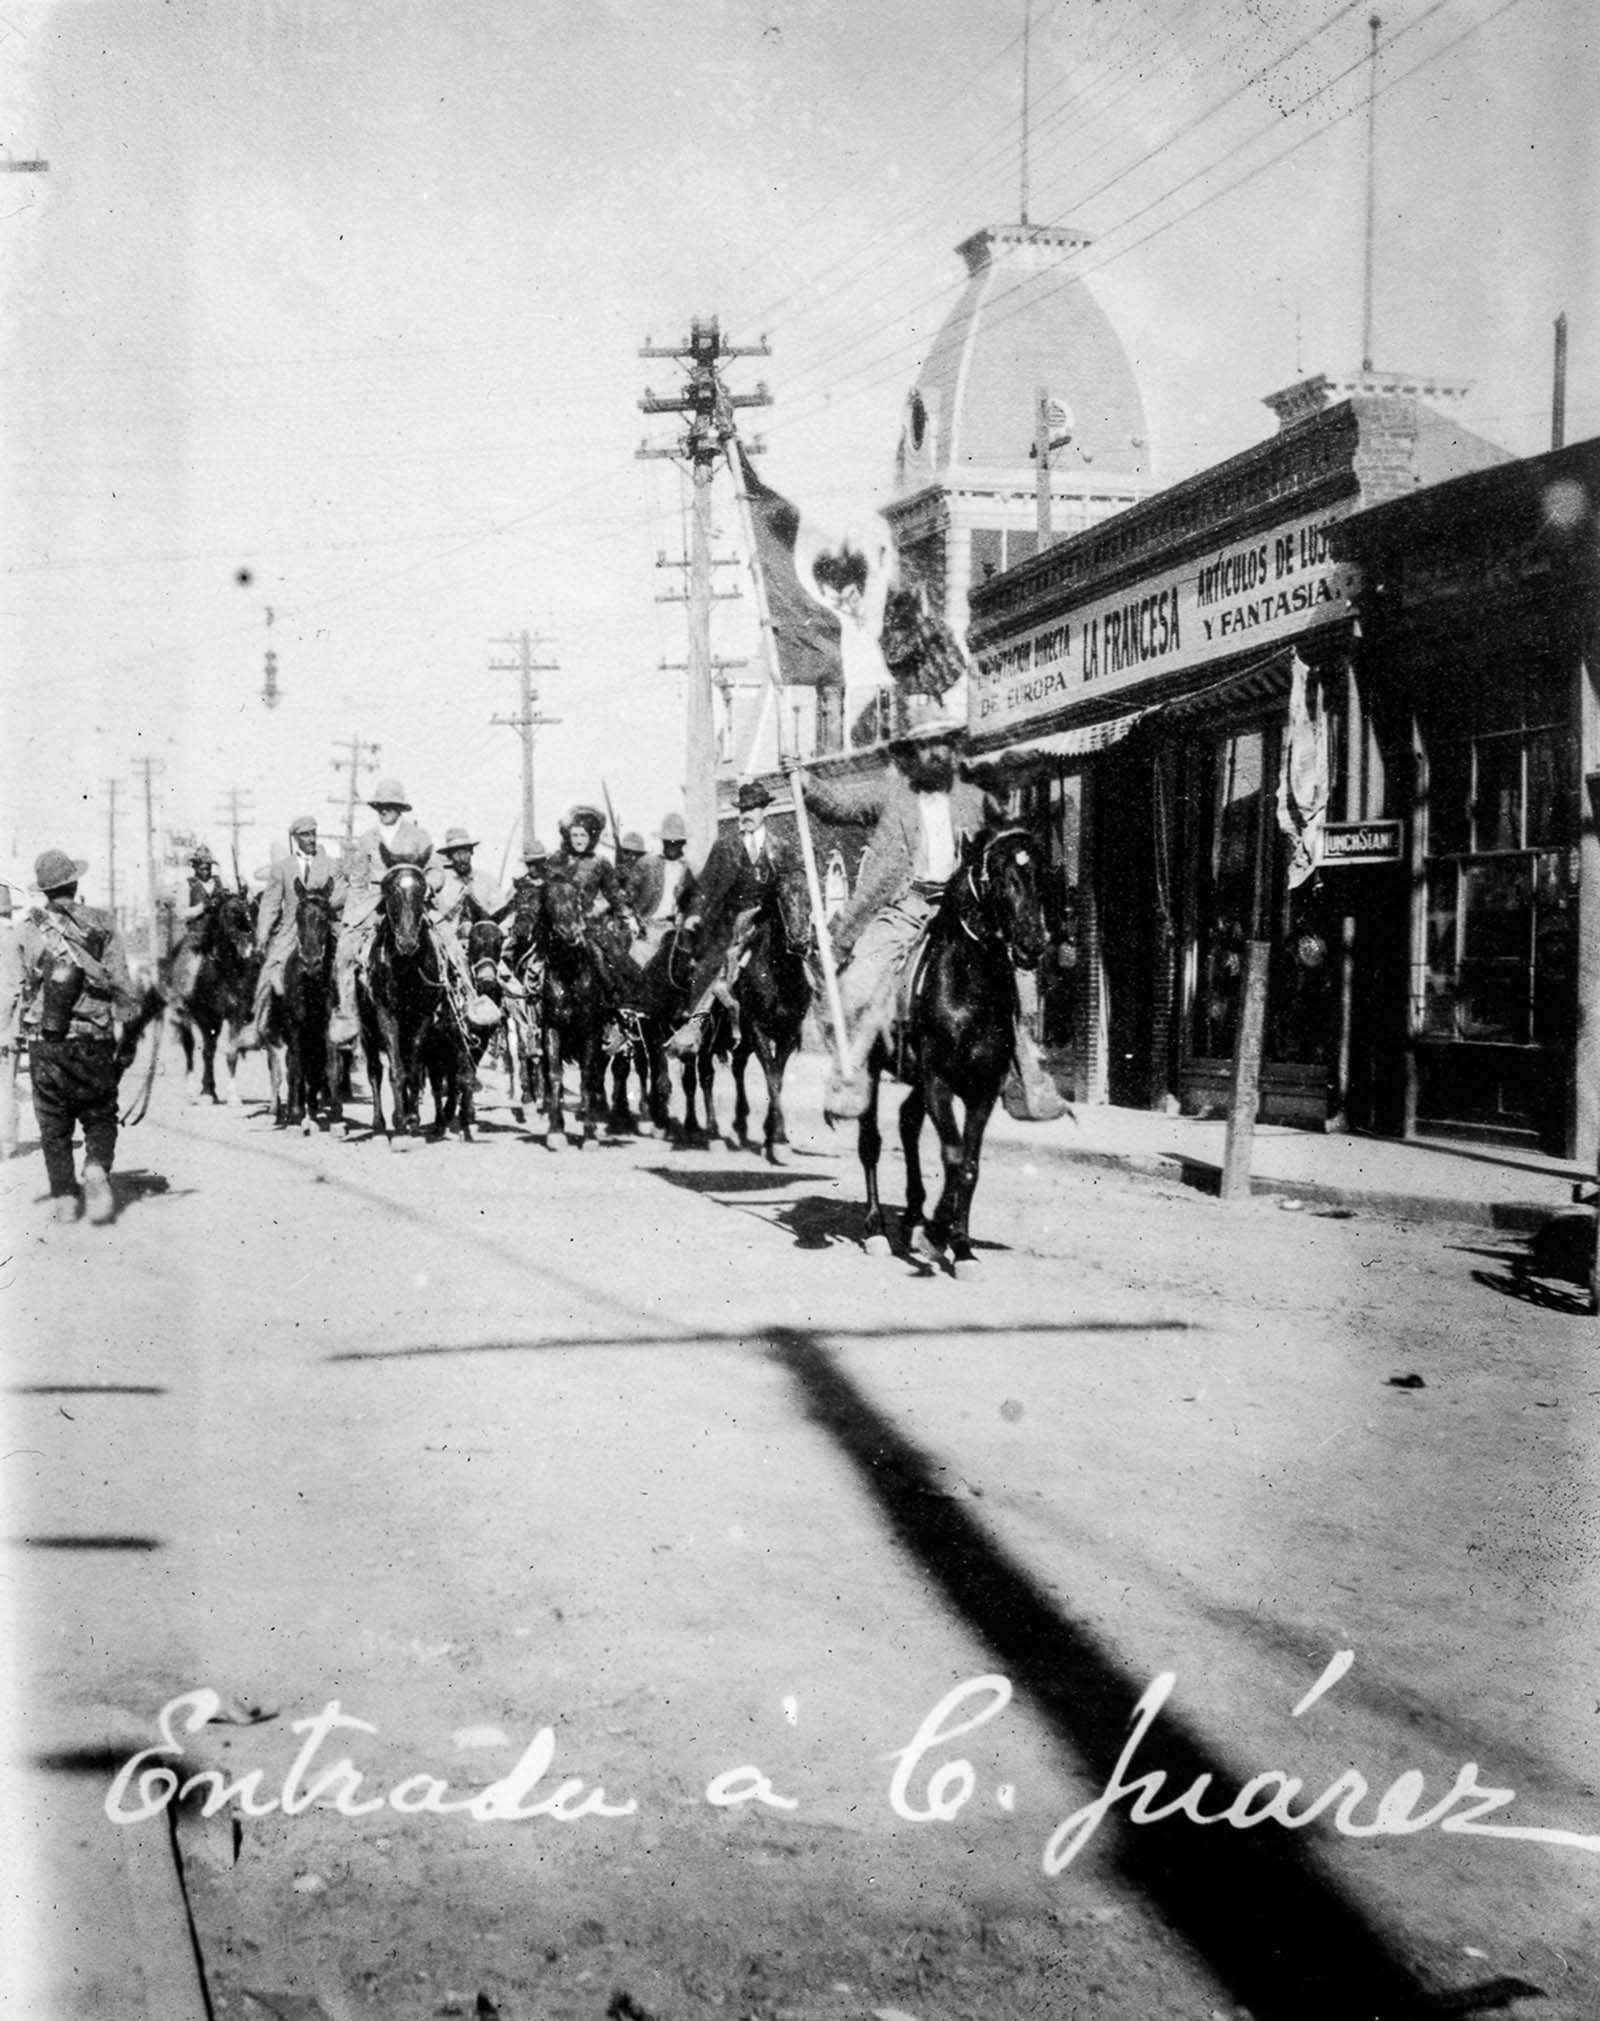 Revolutionary forces march into Ciudad Juárez after the surrender of federal forces.